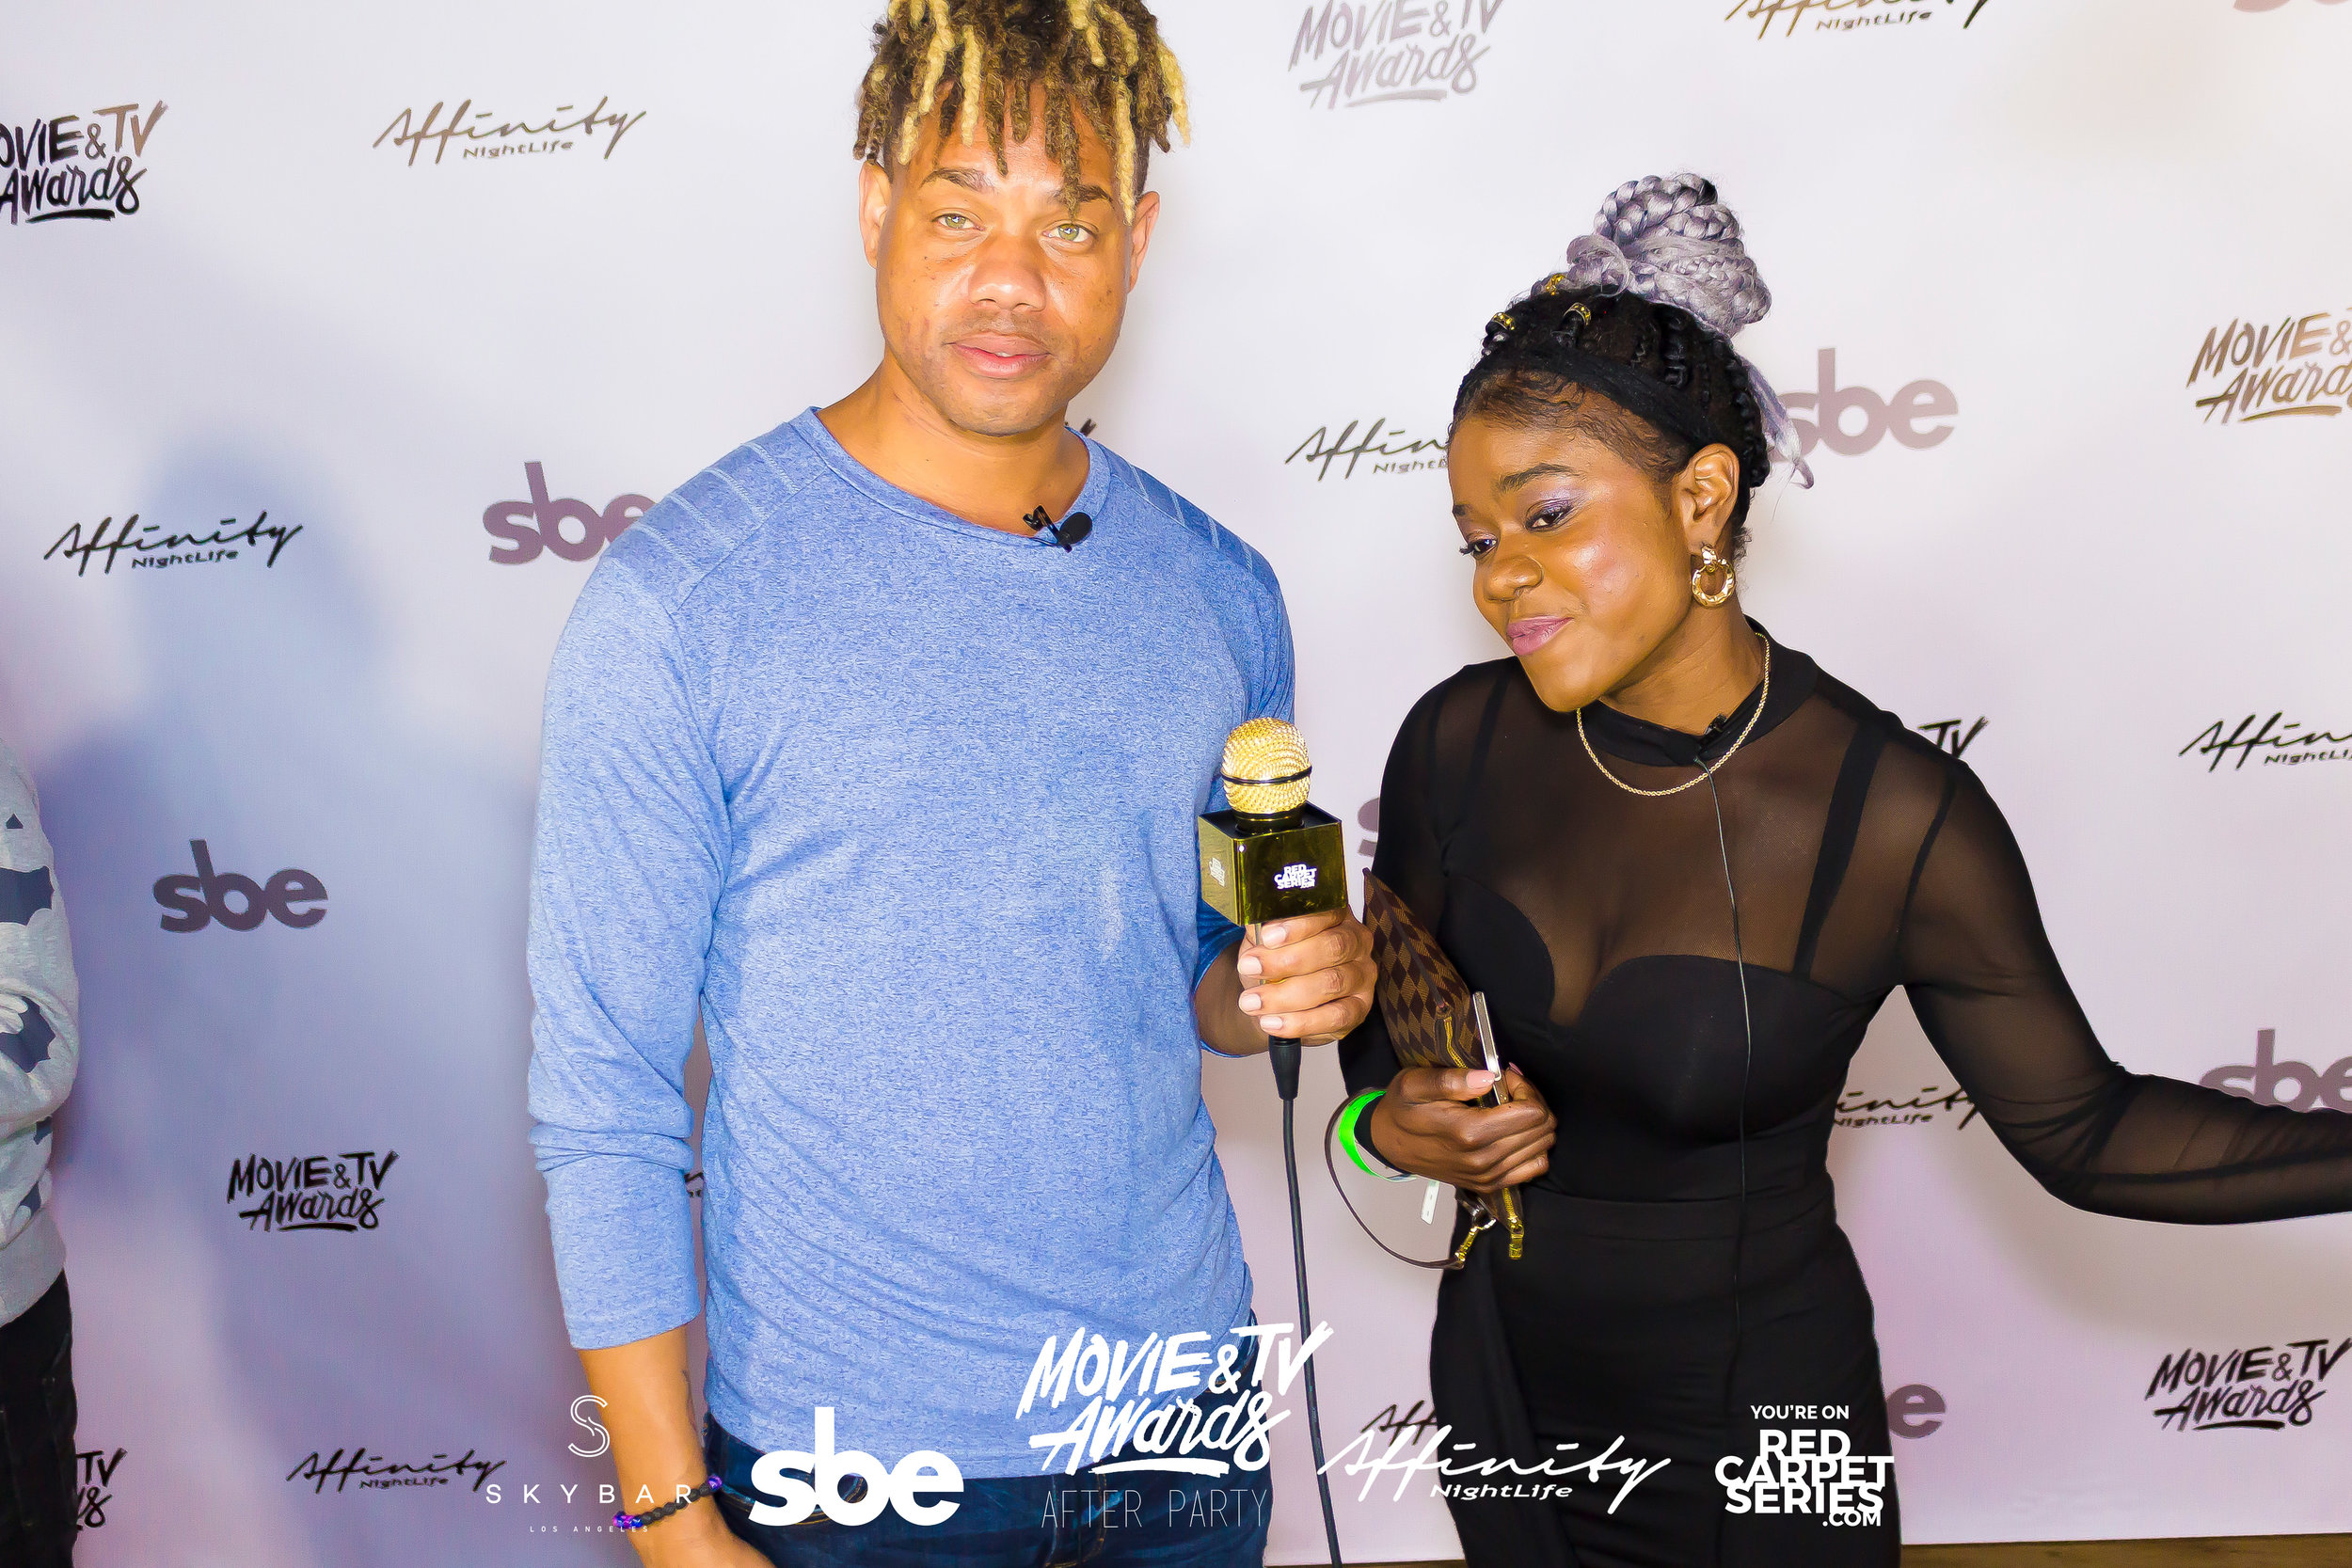 Affinity Nightlife MTV Movie & TV Awards After Party - Skybar at Mondrian - 06-15-19 - Vol. 1_117.jpg